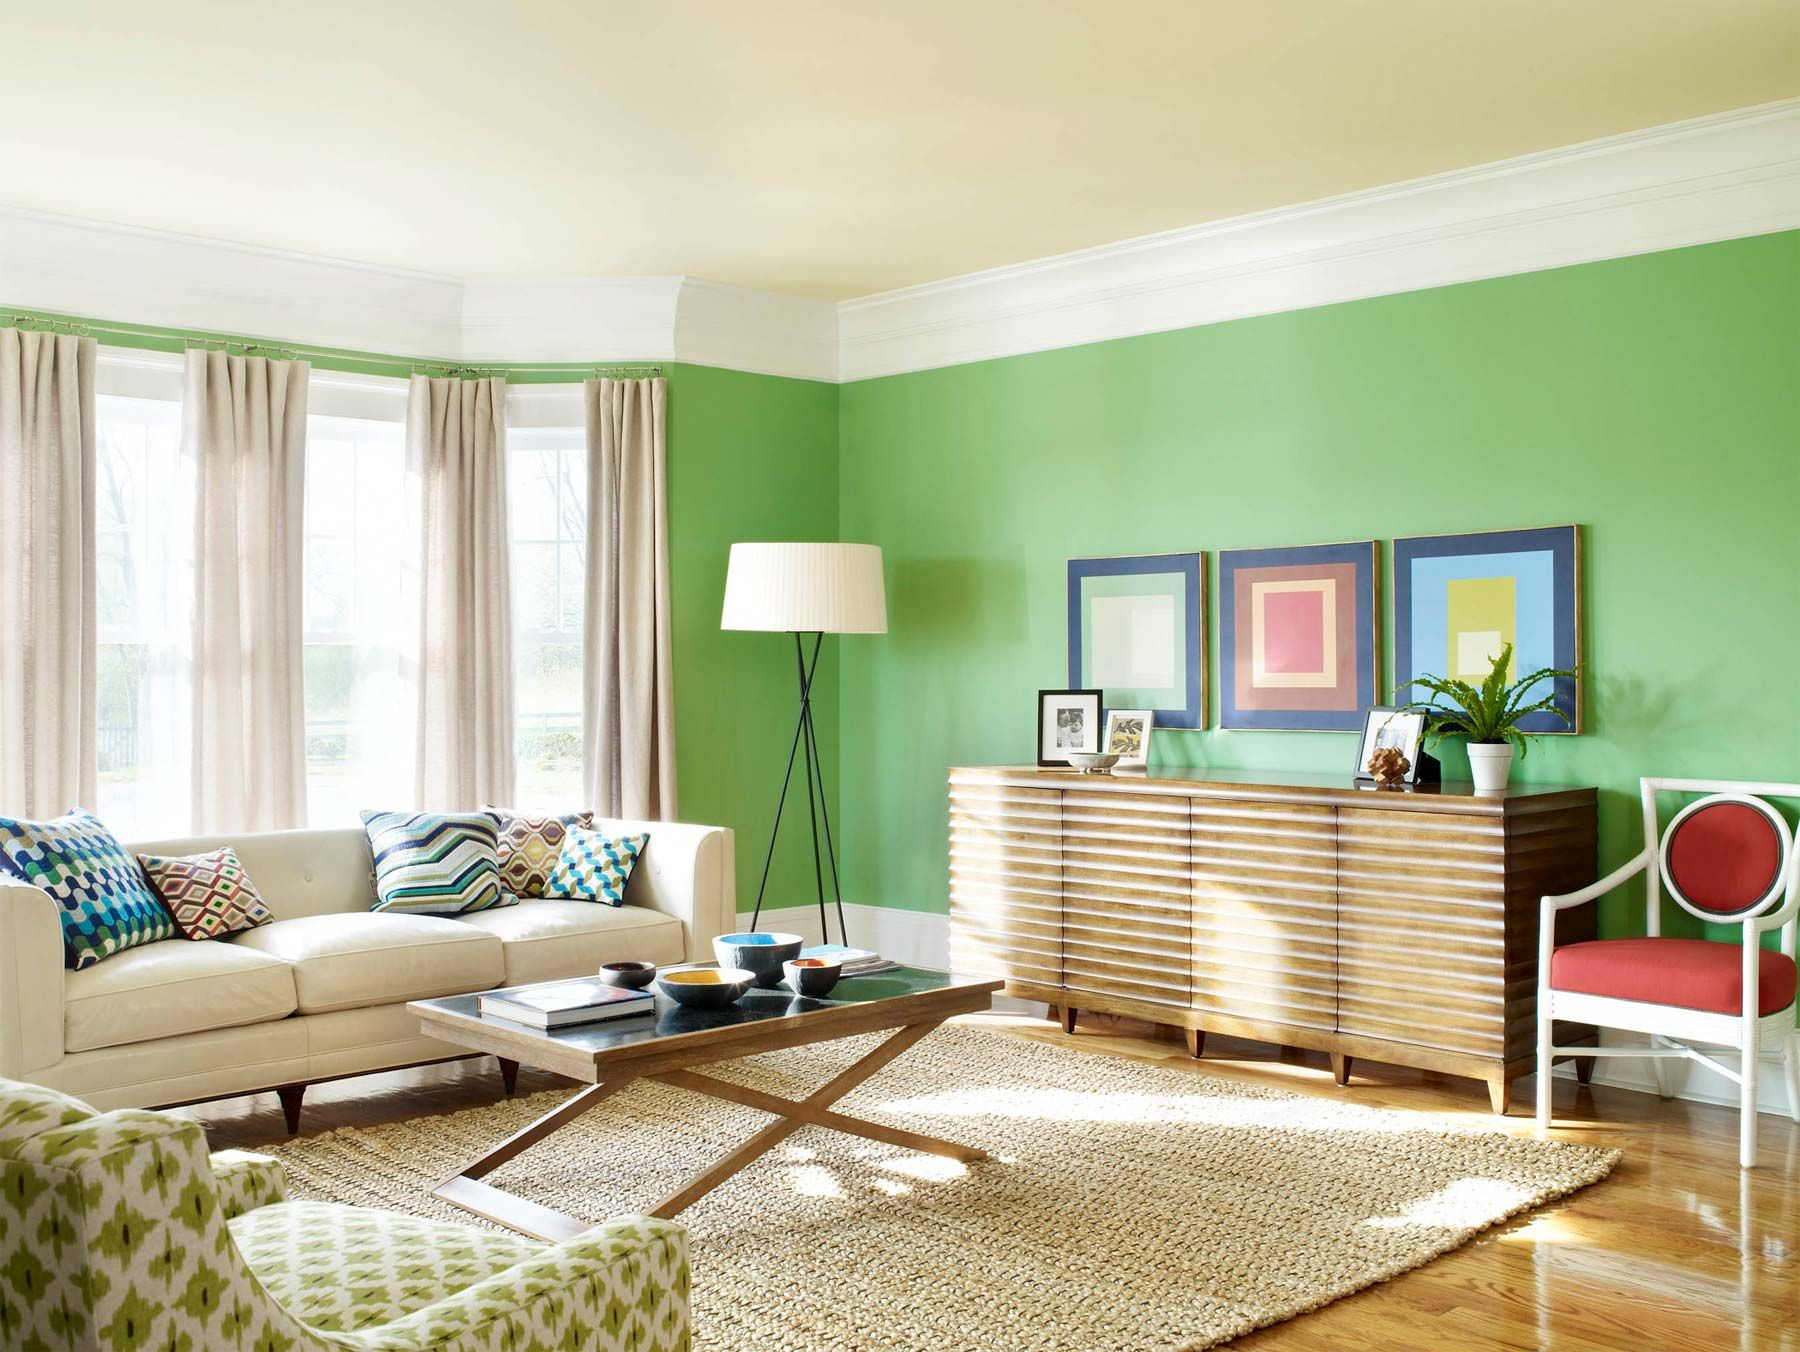 always consider interior designers for quality workpaint colors - Interior Design For New Home